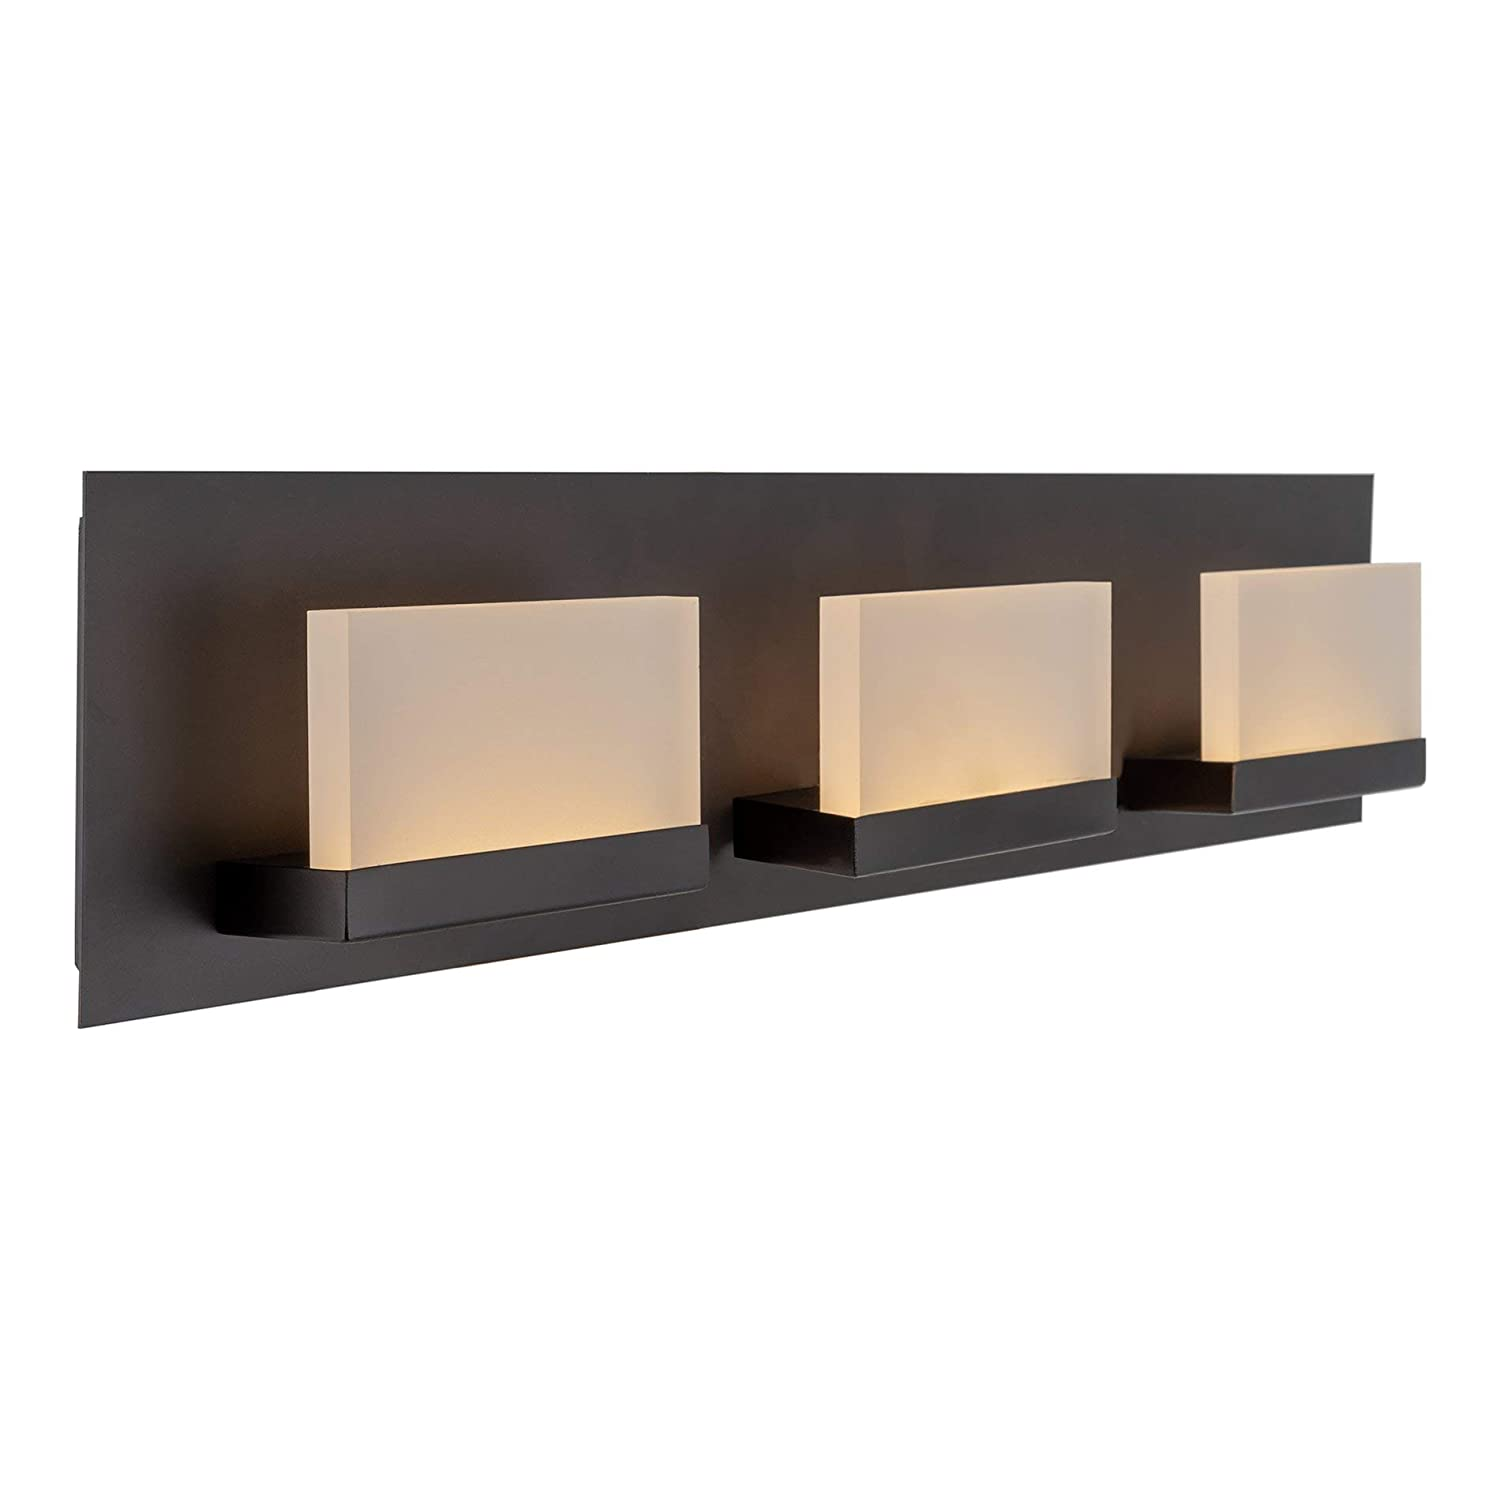 Kira Home Everett 24 Modern 3-Light 19W Integrated LED 180W eq. Bathroom Vanity Light, Rectangular Acrylic Lenses, Energy Efficient, Eco-Friendly, 3000k Warm White Light, Oil Rubbed Bronze Finish